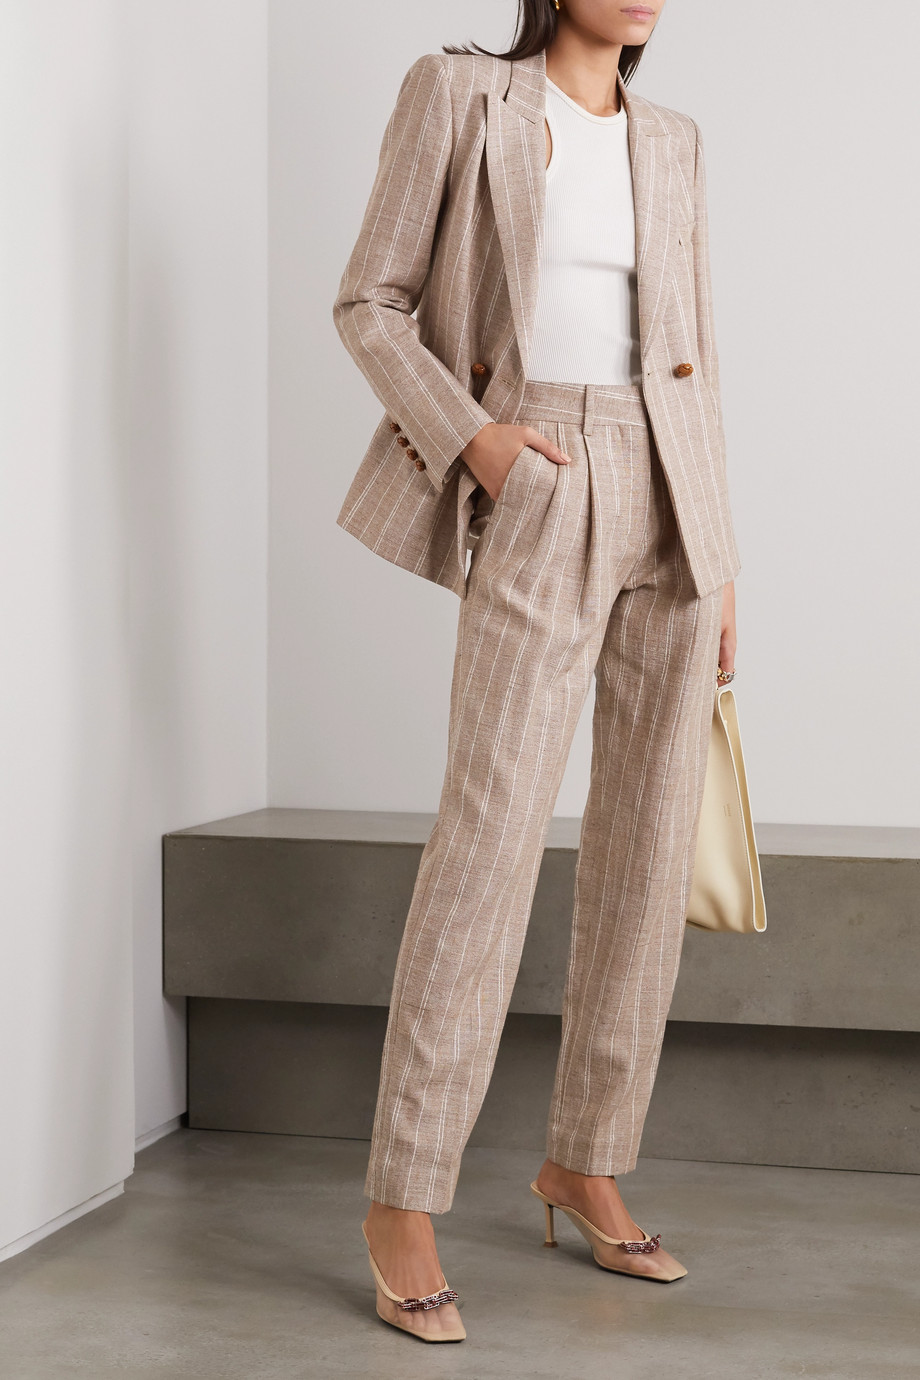 Blazé Milano Wind Hunter Banker pinstriped grain de poudre straight-leg pants